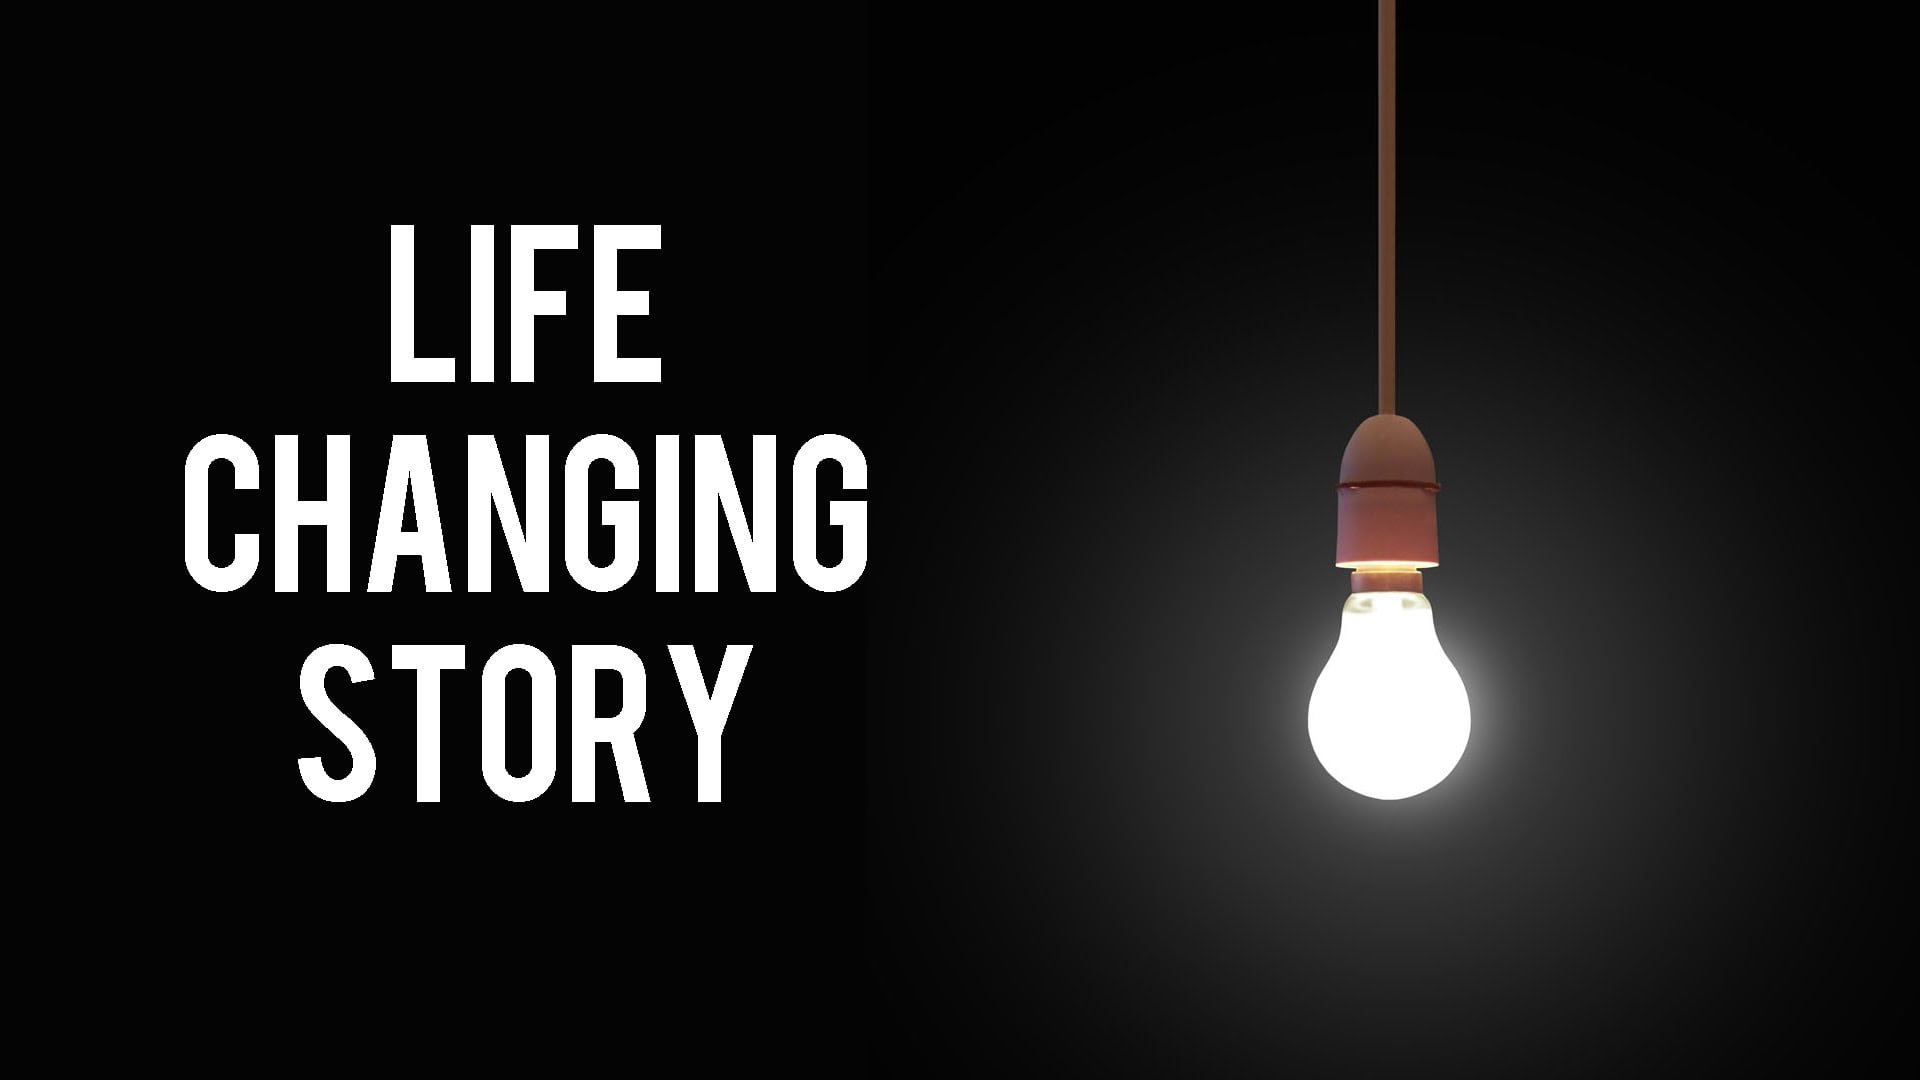 7 Inspiring Short Stories to Change Our Attitude for Life